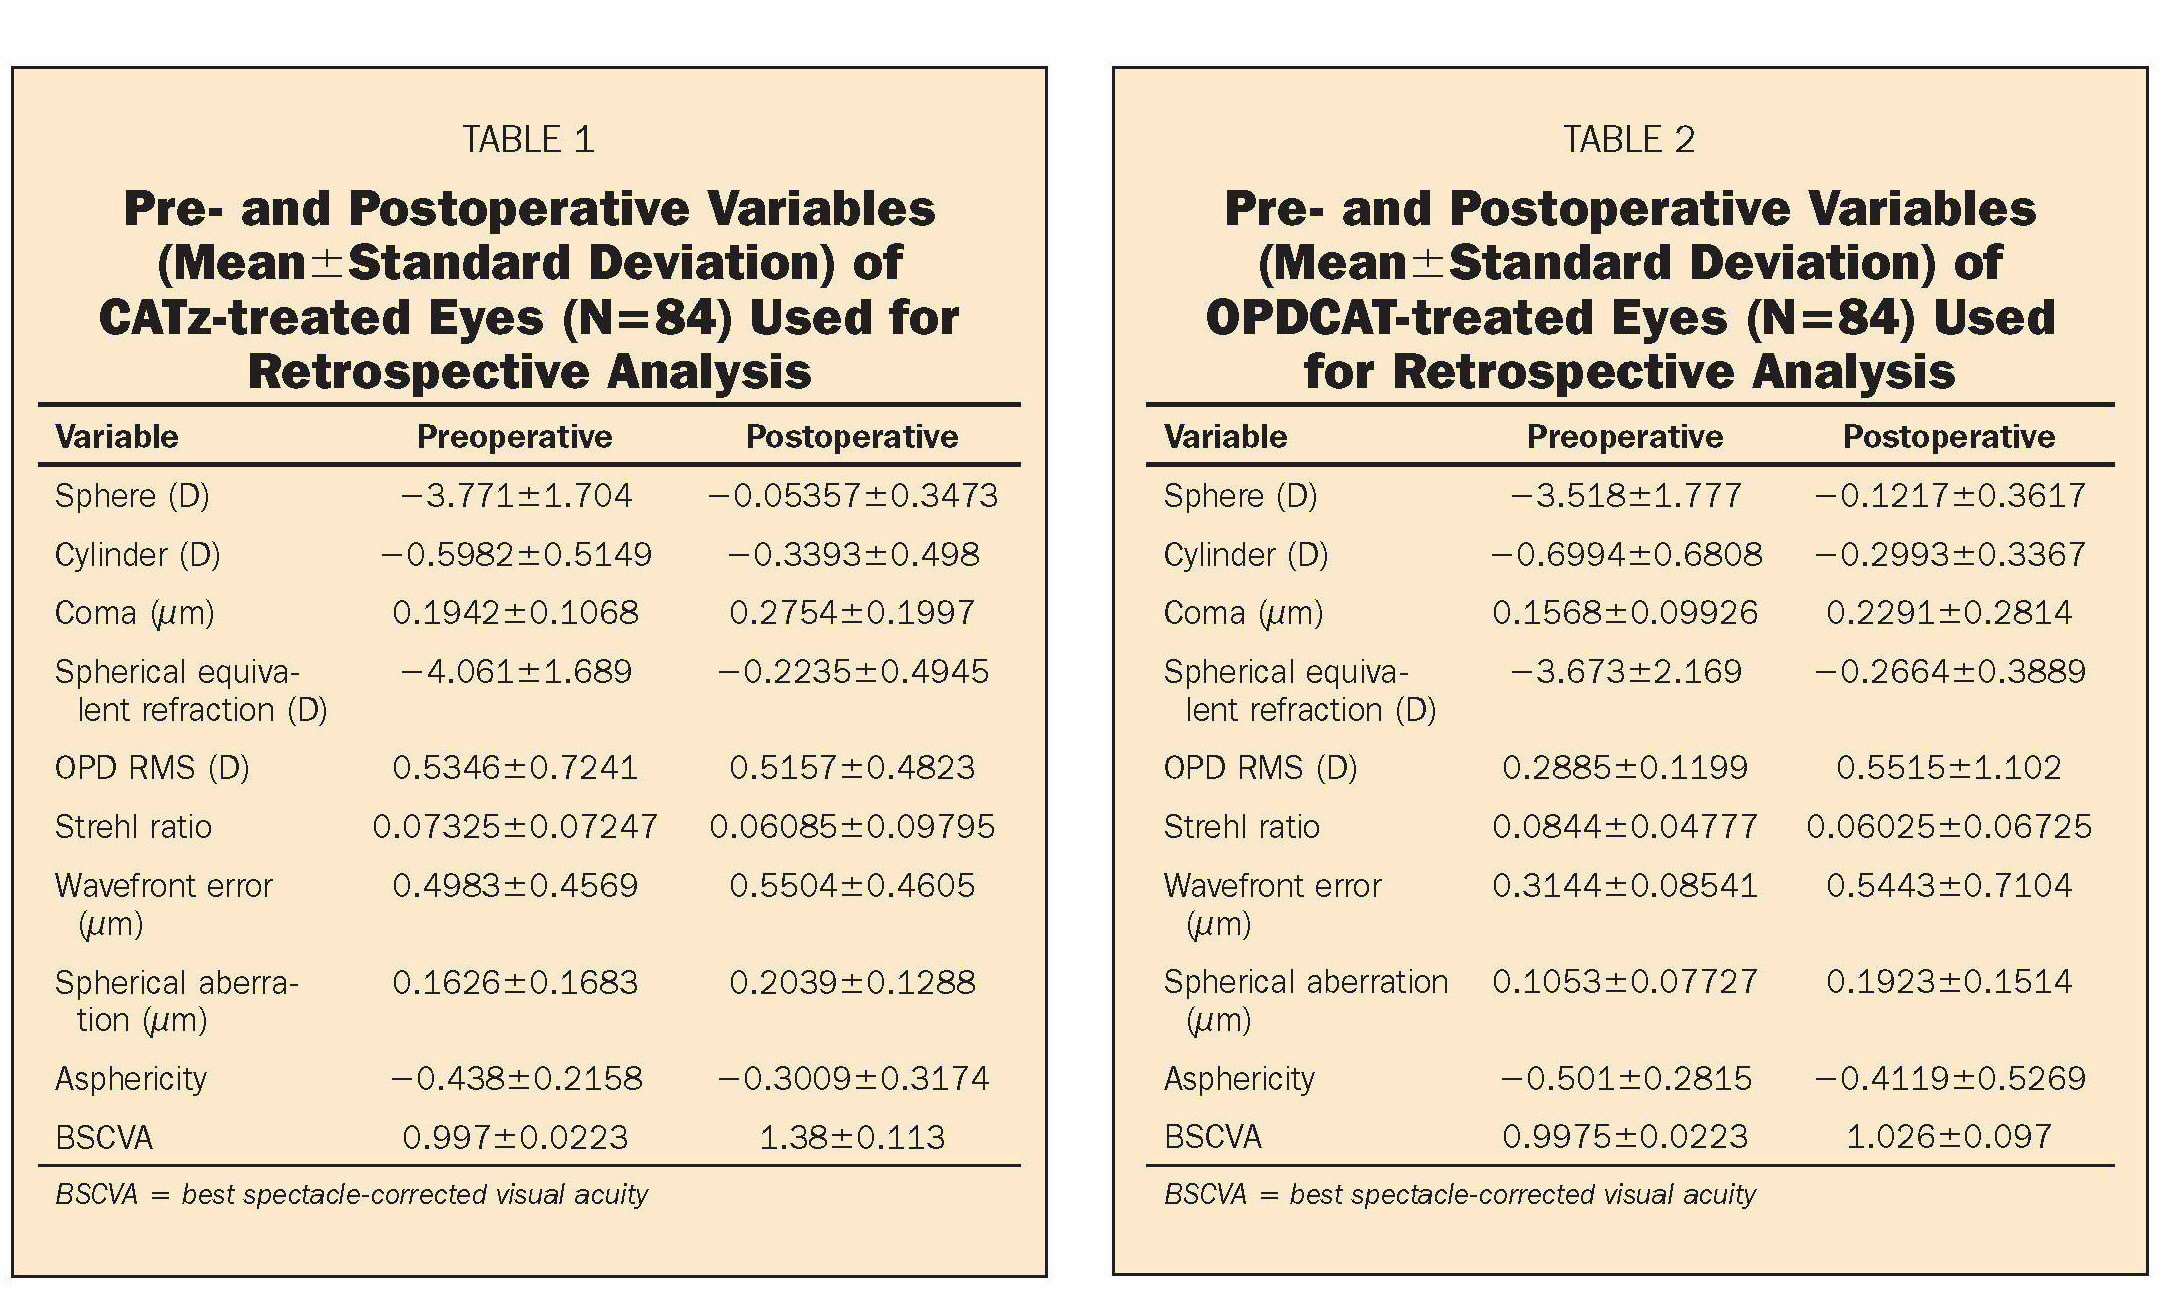 TABLE 1Pre- and Postoperative Variables (Mean ± Standard Deviation) of CATz-treated Eyes (N=84) Used for Retrospective AnalysisTABLE 2Pre- and Postoperative Variables (Mean ± Standard Deviation) of OPDCAT-treated Eyes (N =84) Used for Retrospective Analysis